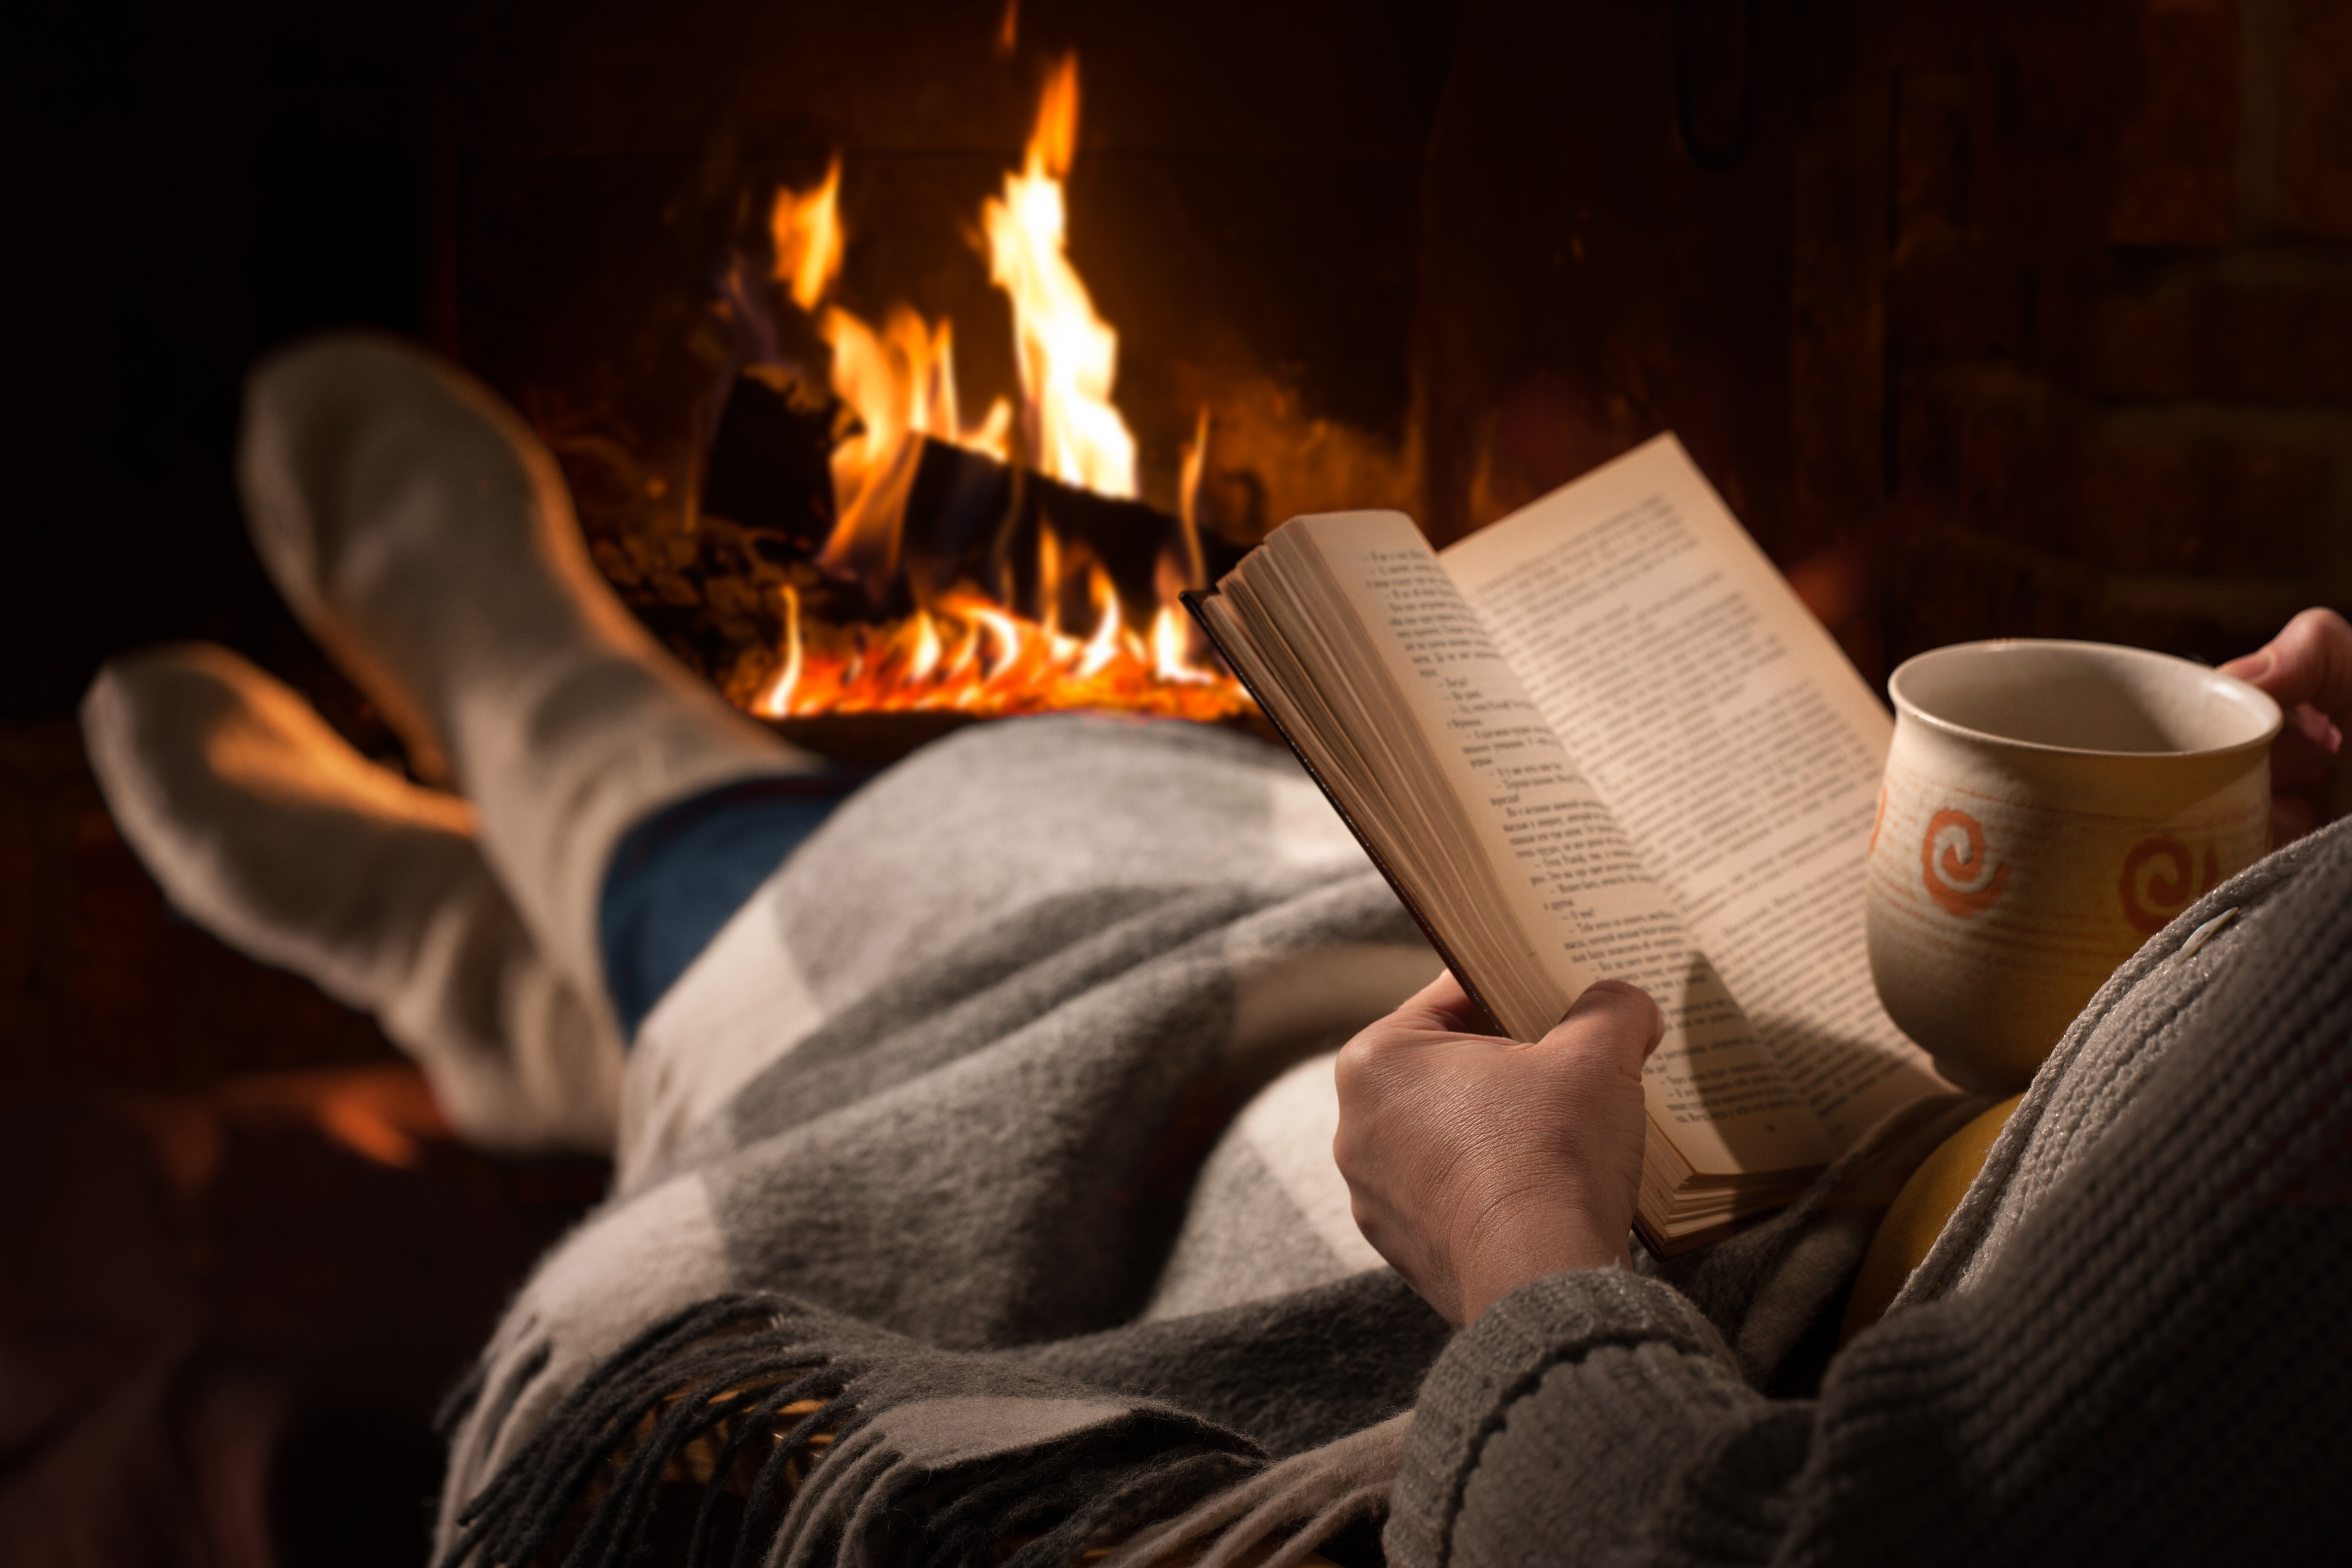 Reading in front of the fire Christmas